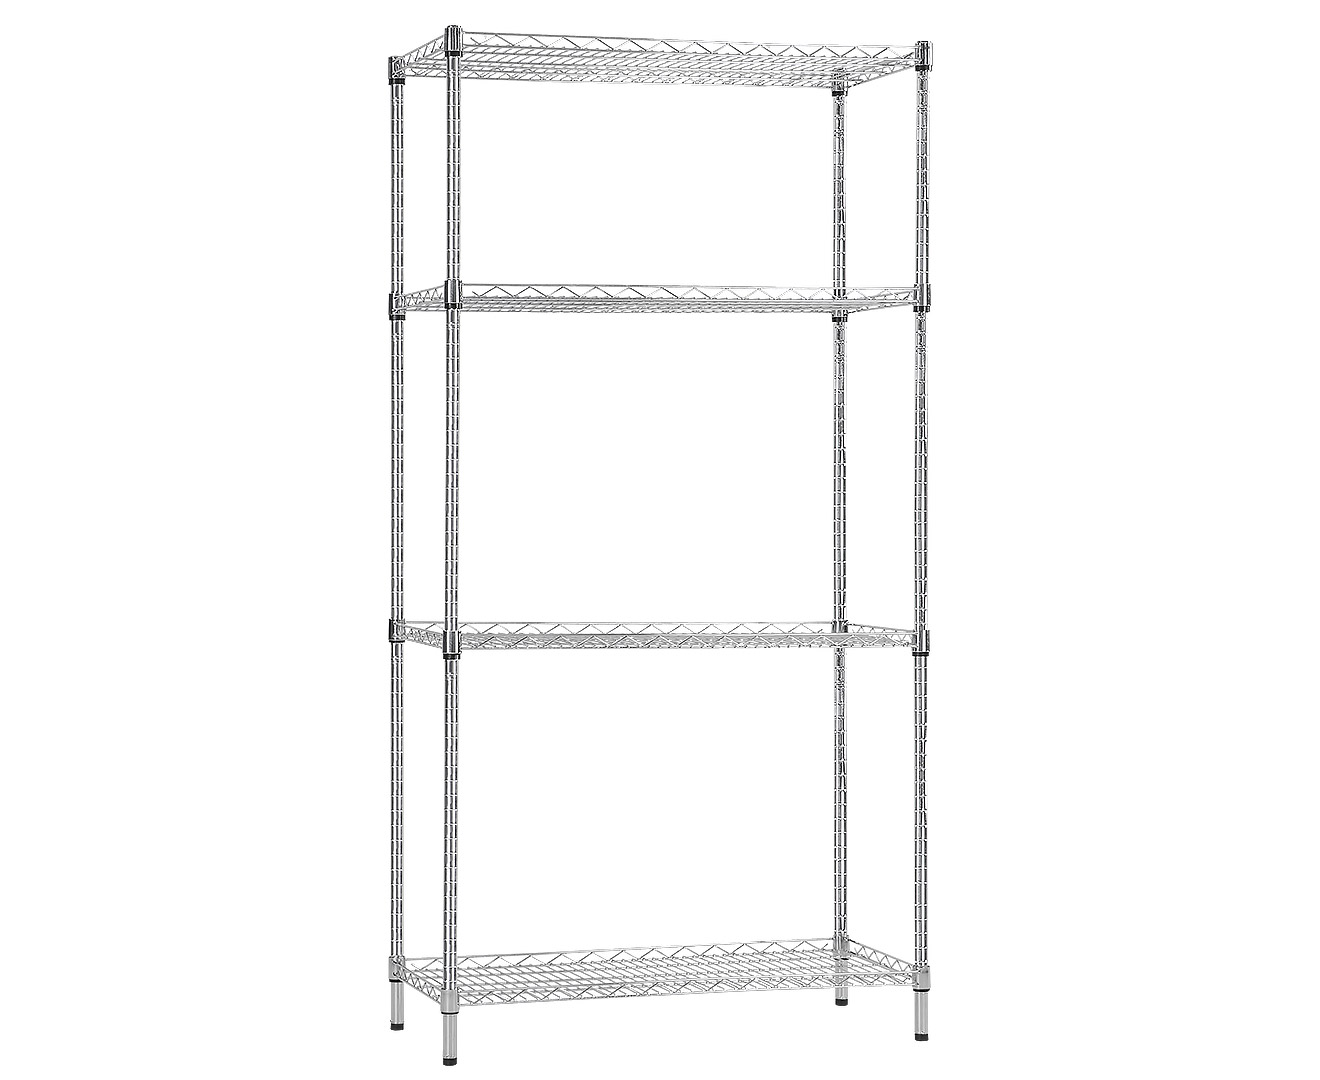 Syncrosteel Chrome Wire Shelving Storage Unit 1200x350mm - 1.8 m high - $366.3